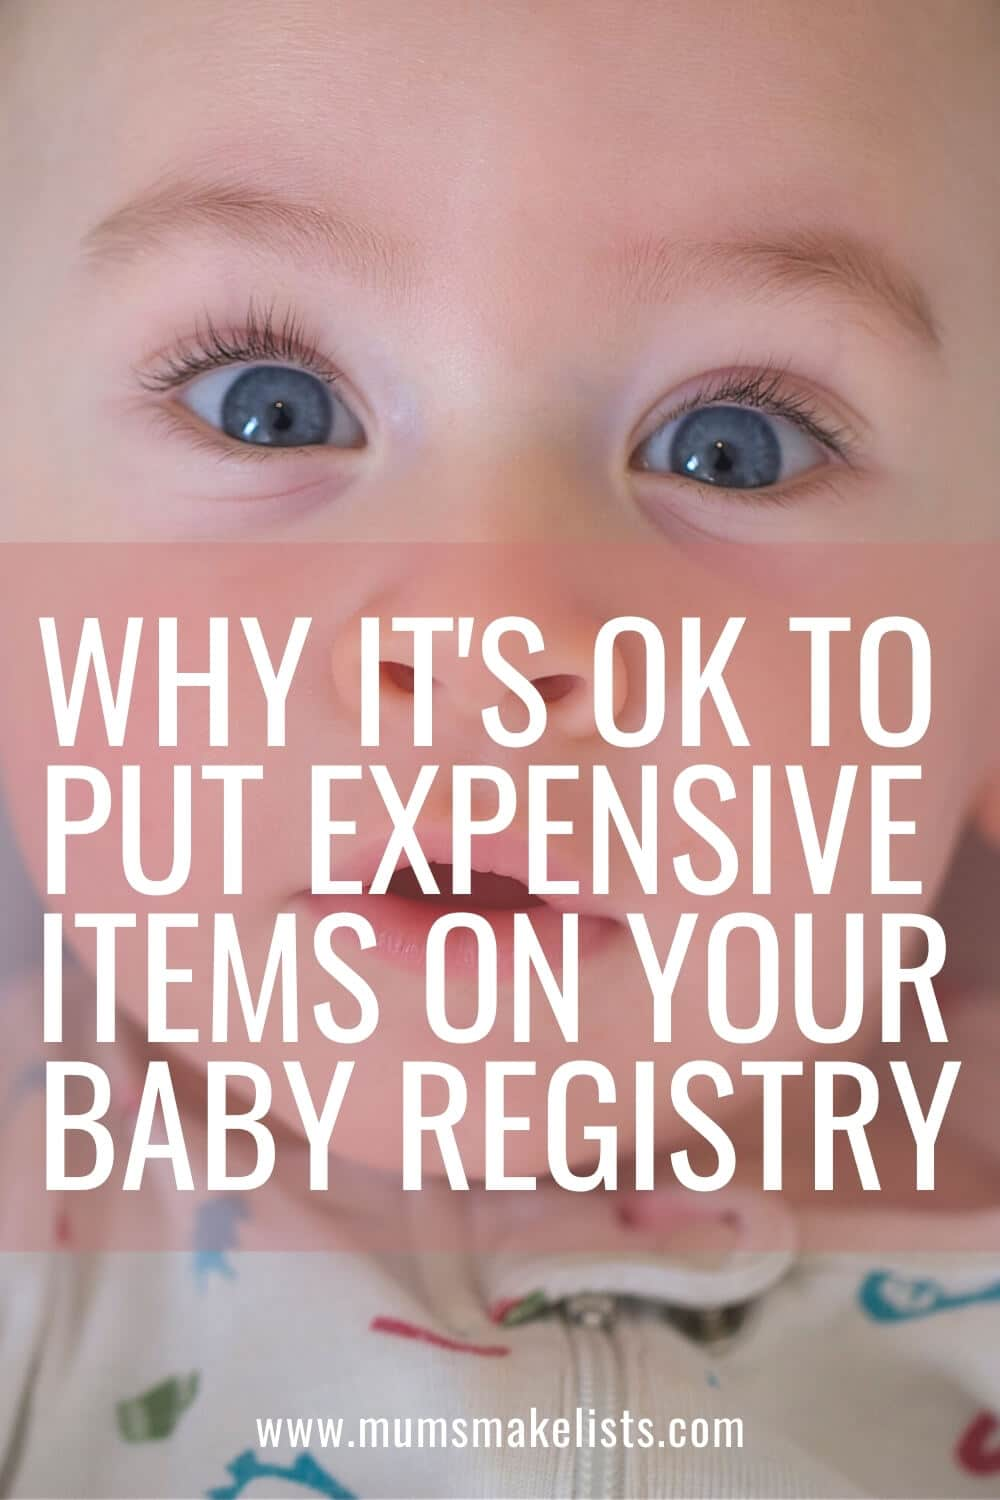 Is it rude to put expensive items on baby registry? Is it ok to put expensive items on baby registry? WHY IT'S OK TO PUT EXPENSIVE ITEMS ON YOUR BABY REGISTRY, what is good baby registry etiquette?